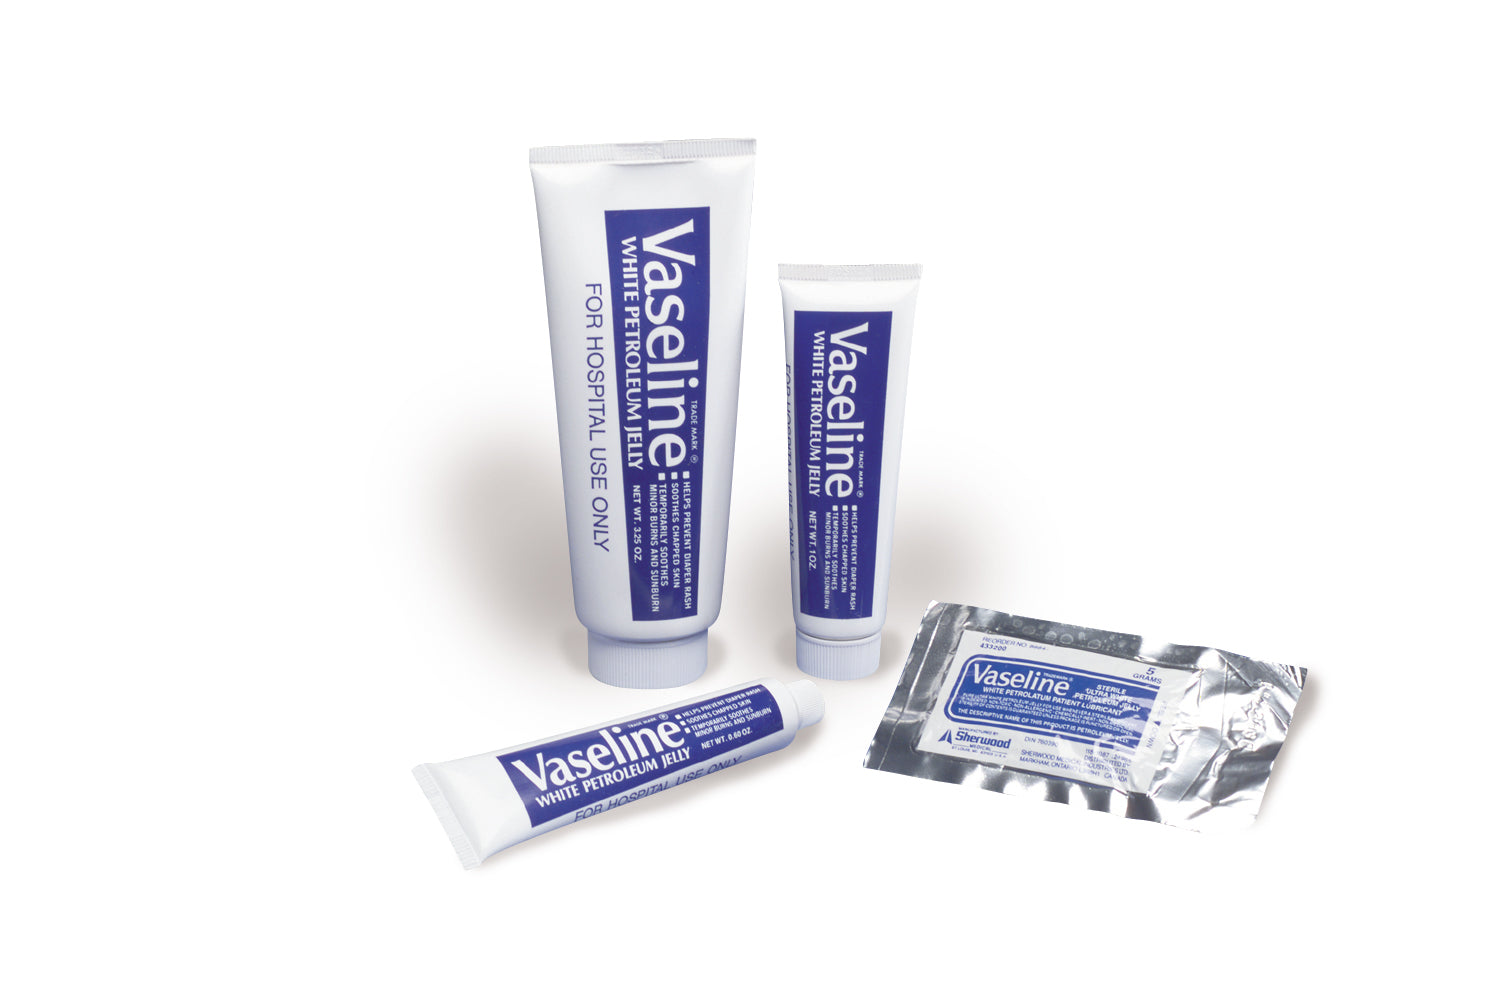 Kendall Vaseline Pure Ultra White Petroleum Jelly Tube